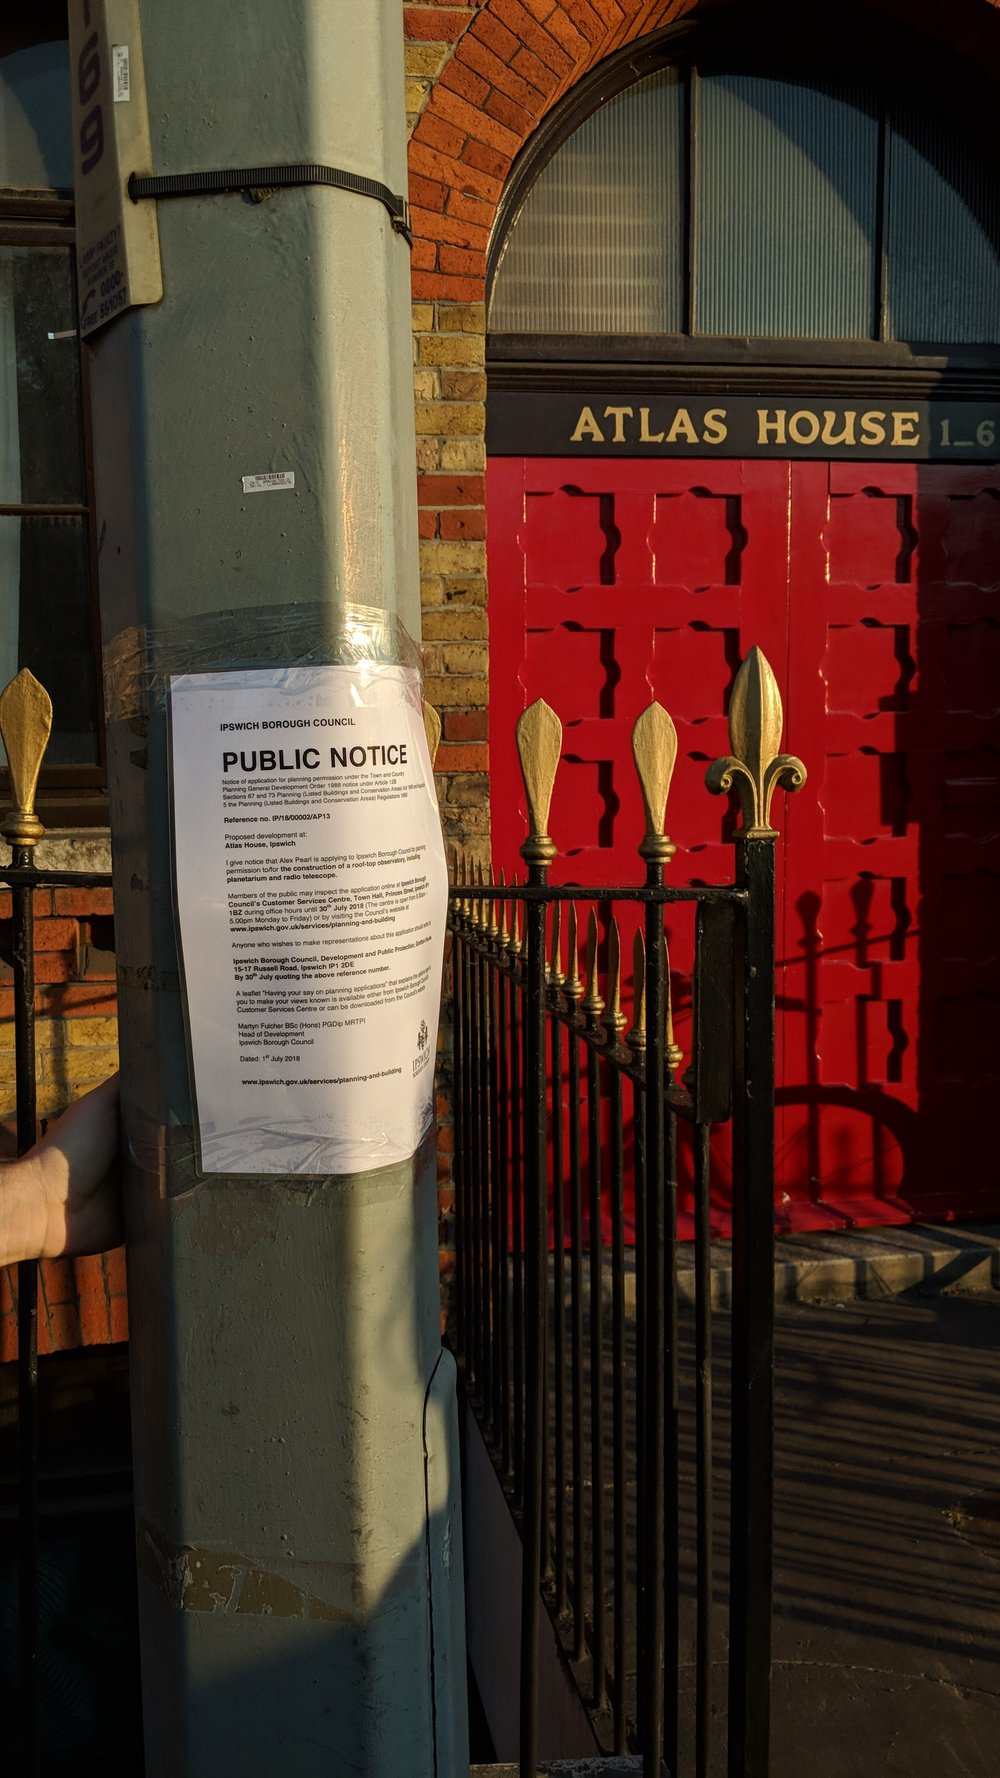 Alex Pearl,  Wondering Ipswich , 2018 Planning permission sign installed outside Atlas House for the construction of a rooftop observatory, including planetarium and radio telescope.